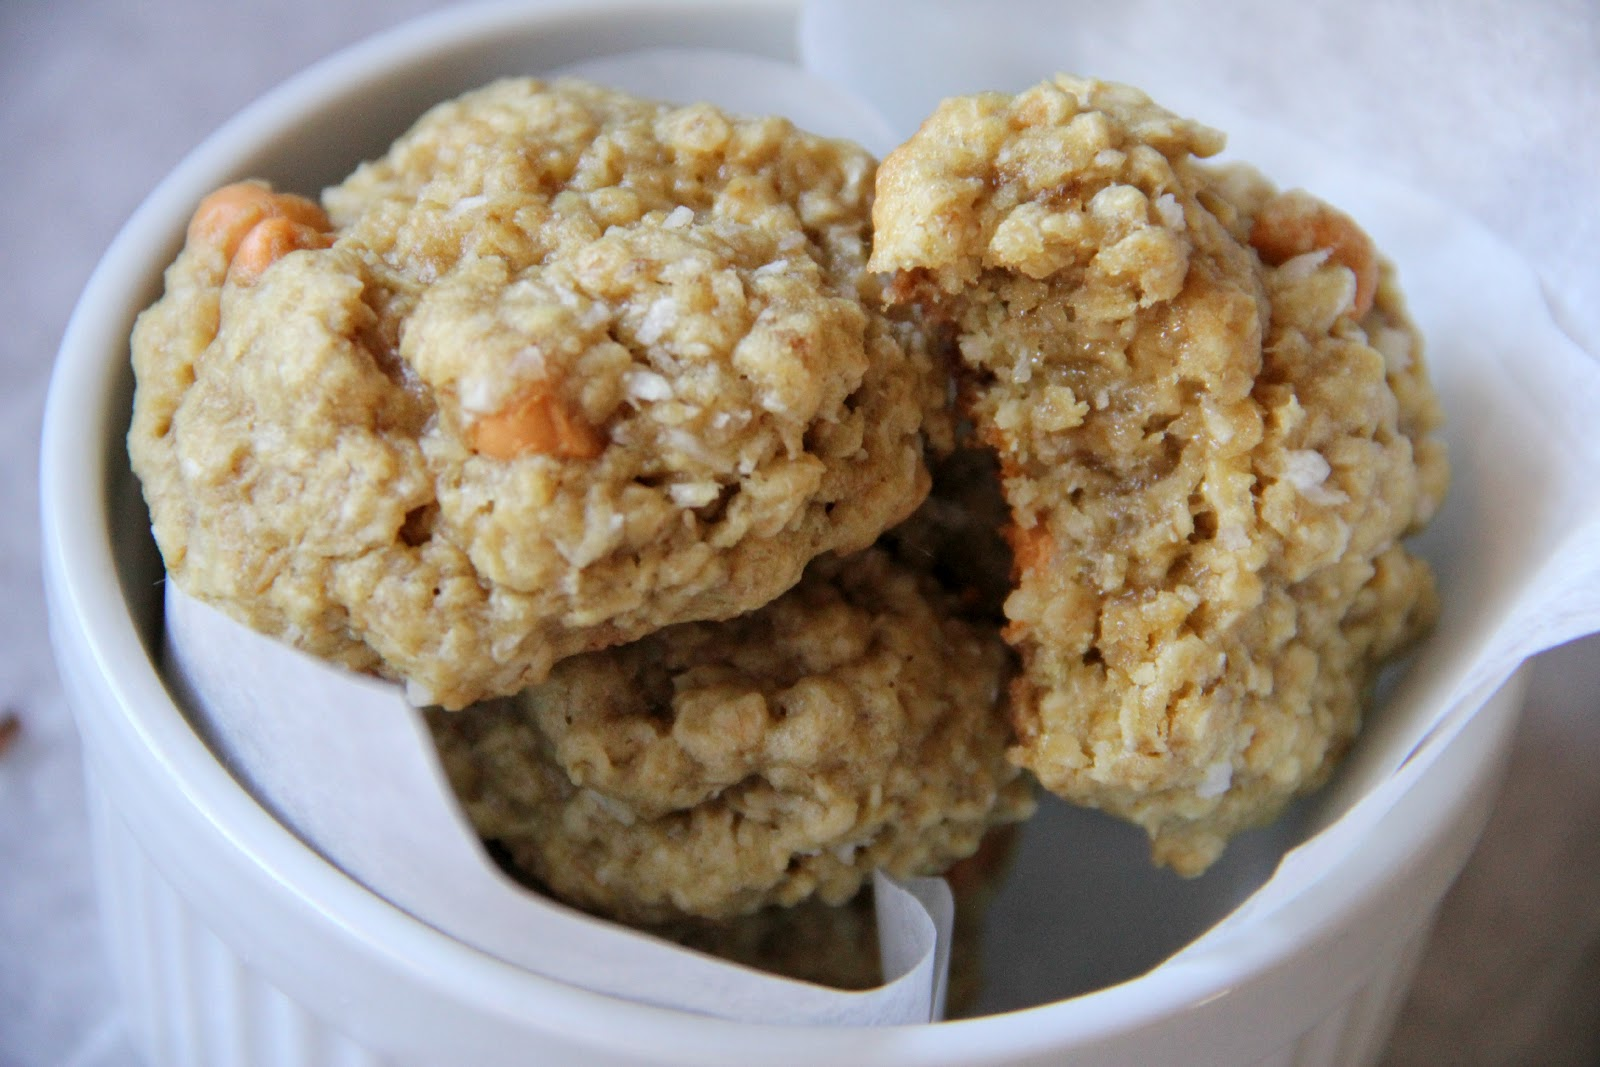 My Happy Place: Coconut Oatmeal Scotchies